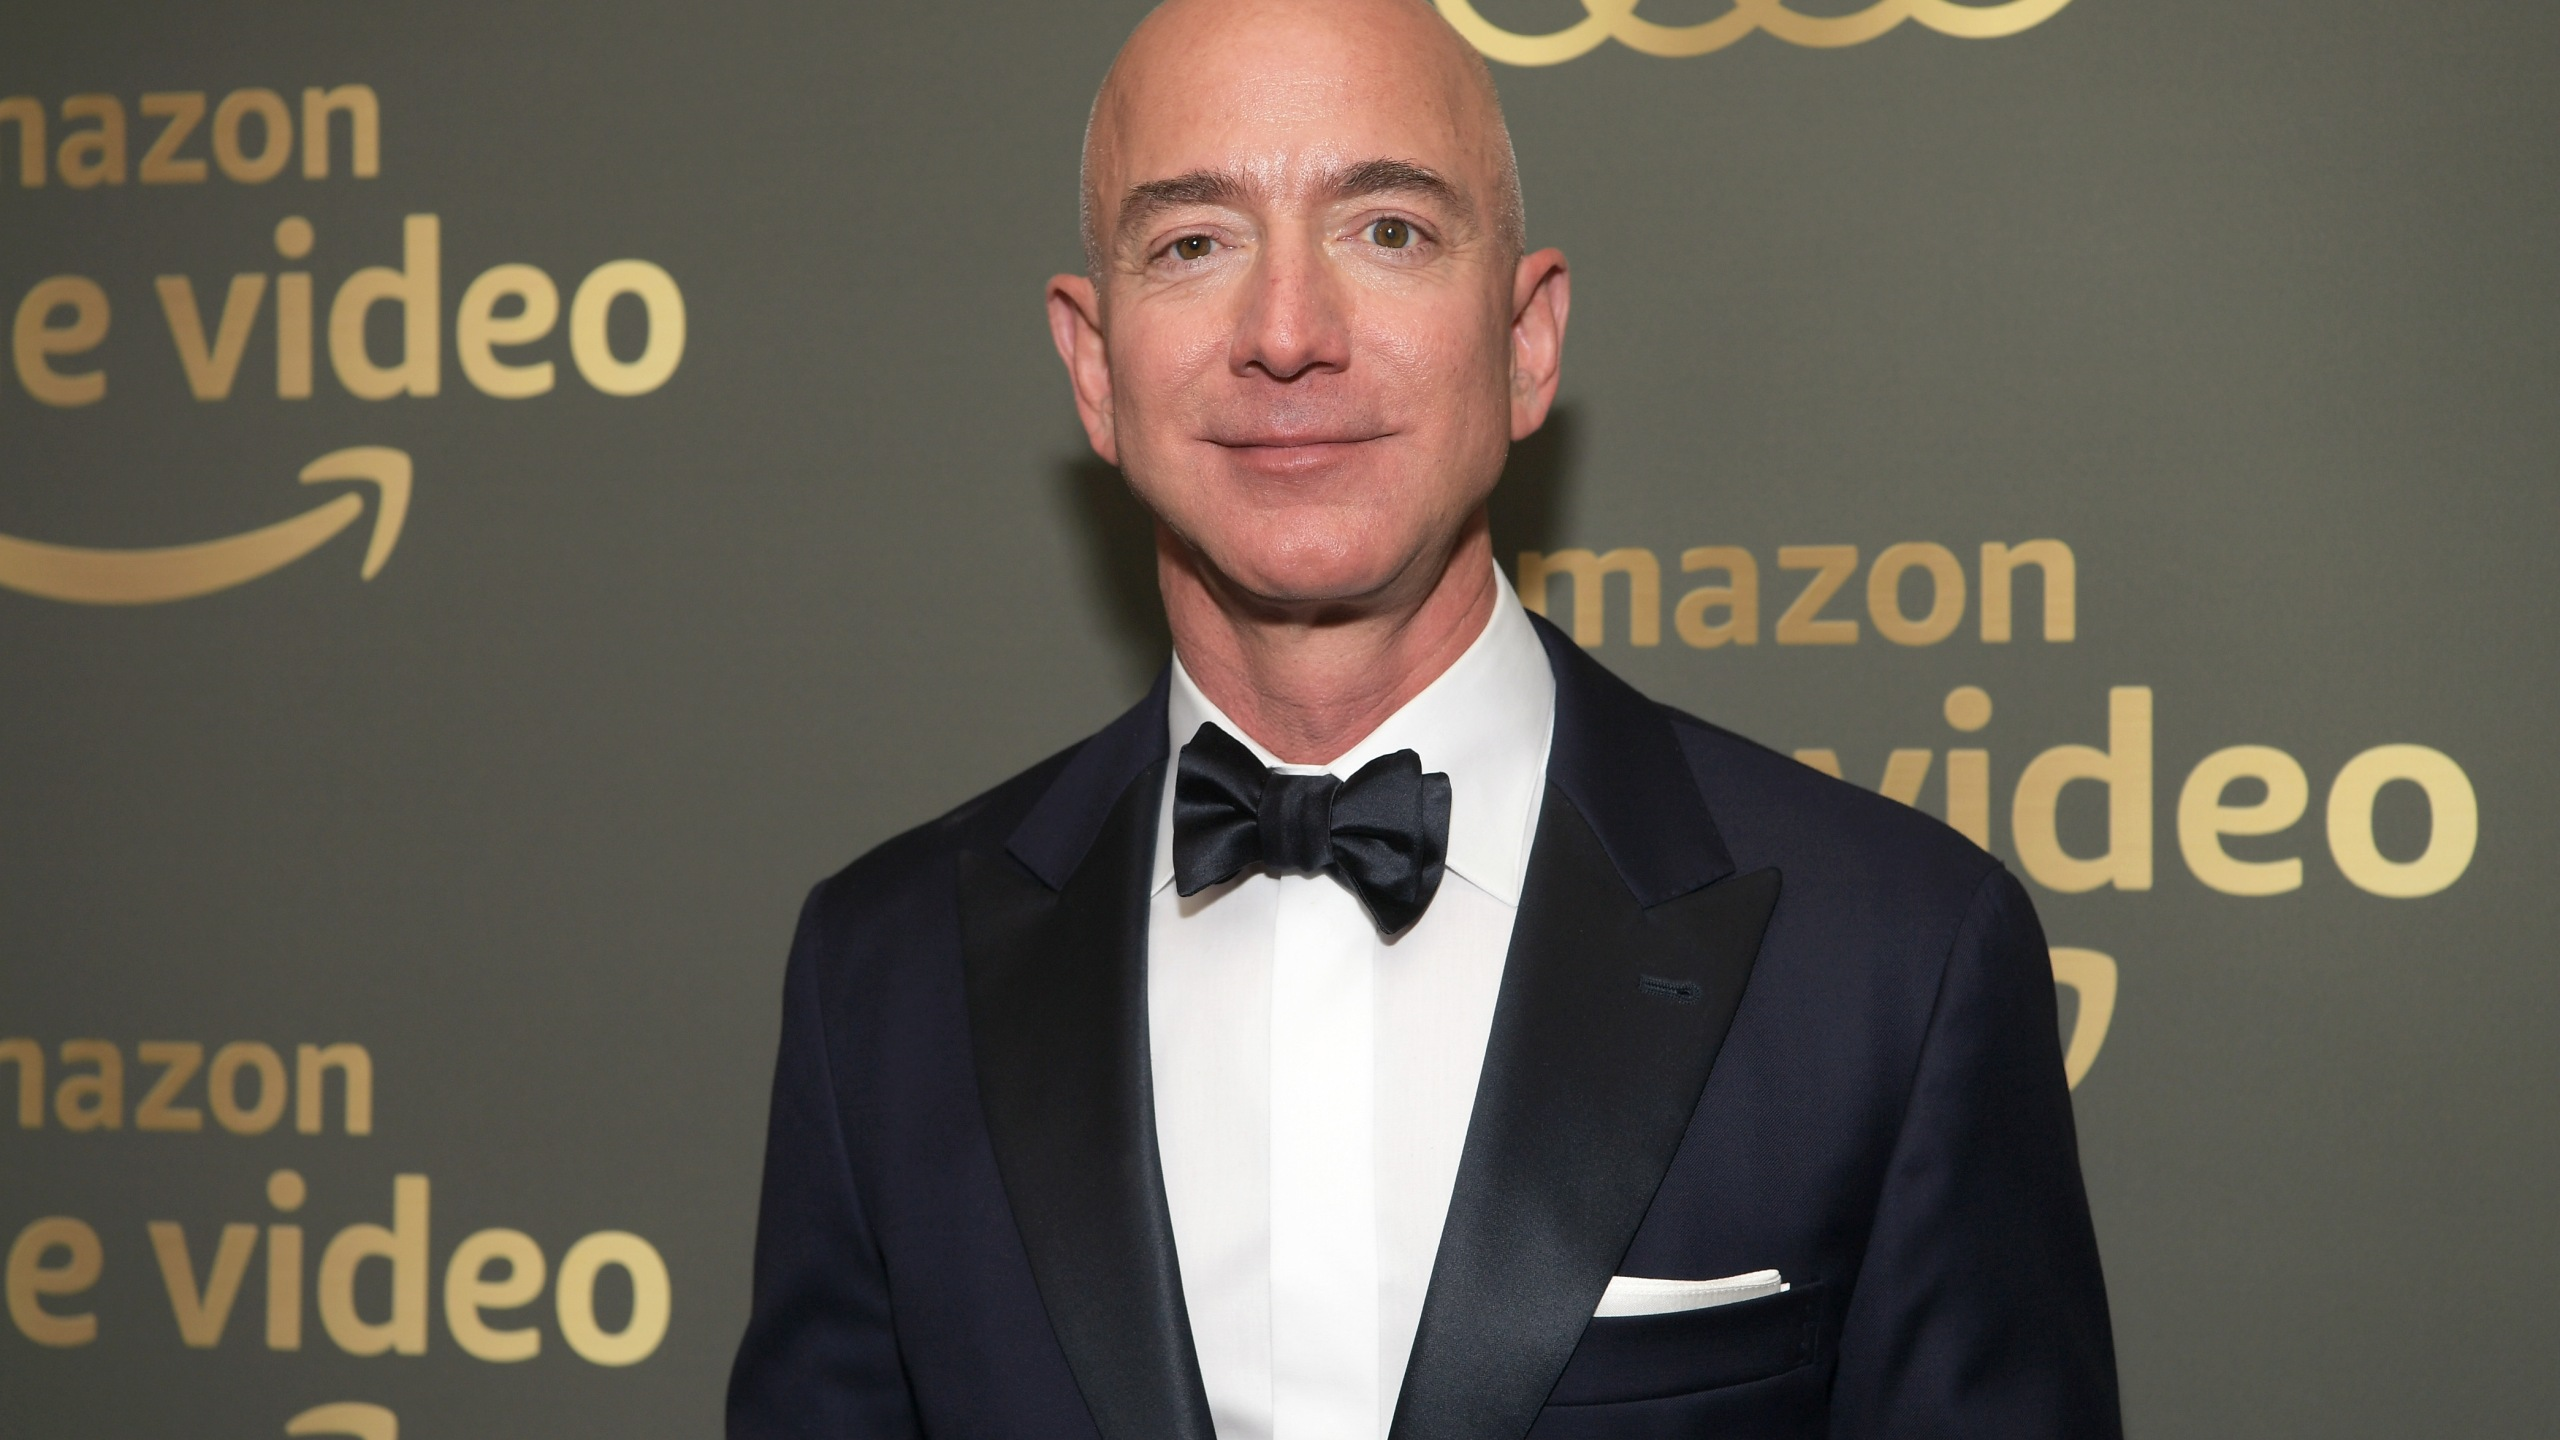 Amazon CEO Jeff Bezos attends the Amazon Prime Video's Golden Globe Awards After Party at The Beverly Hilton Hotel on Jan. 6, 2019, in Beverly Hills. (Credit: Emma McIntyre/Getty Images)